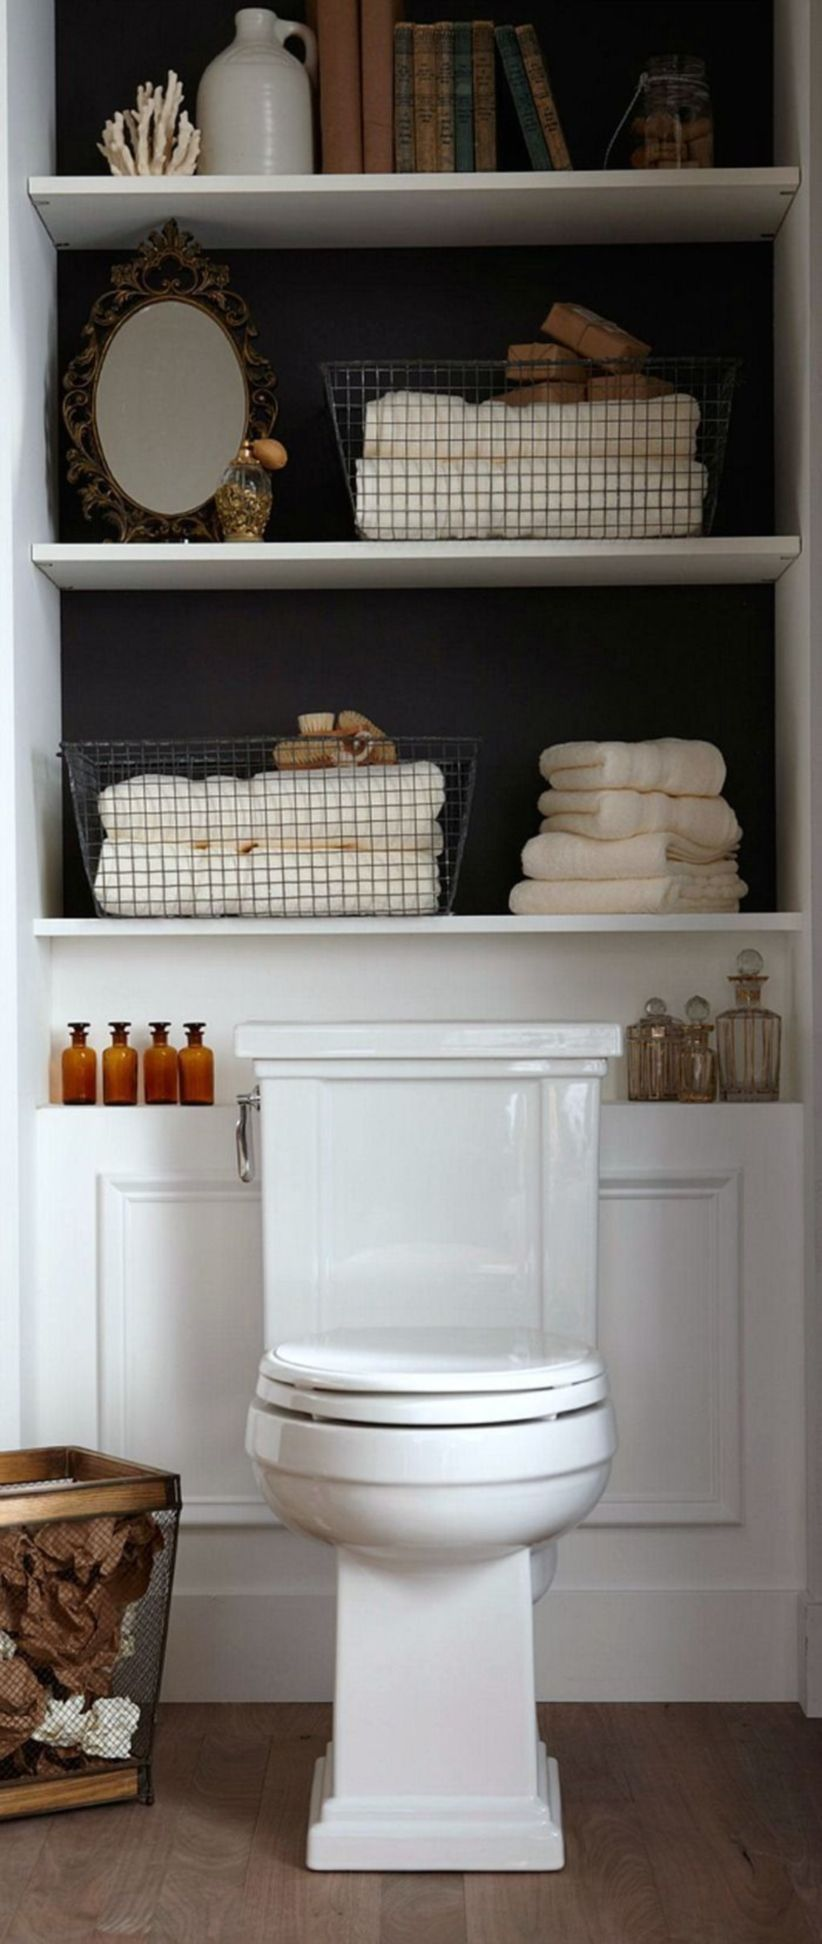 25 most clever storage ideas for small spaces created by - Clever storage ideas for small bathrooms ...